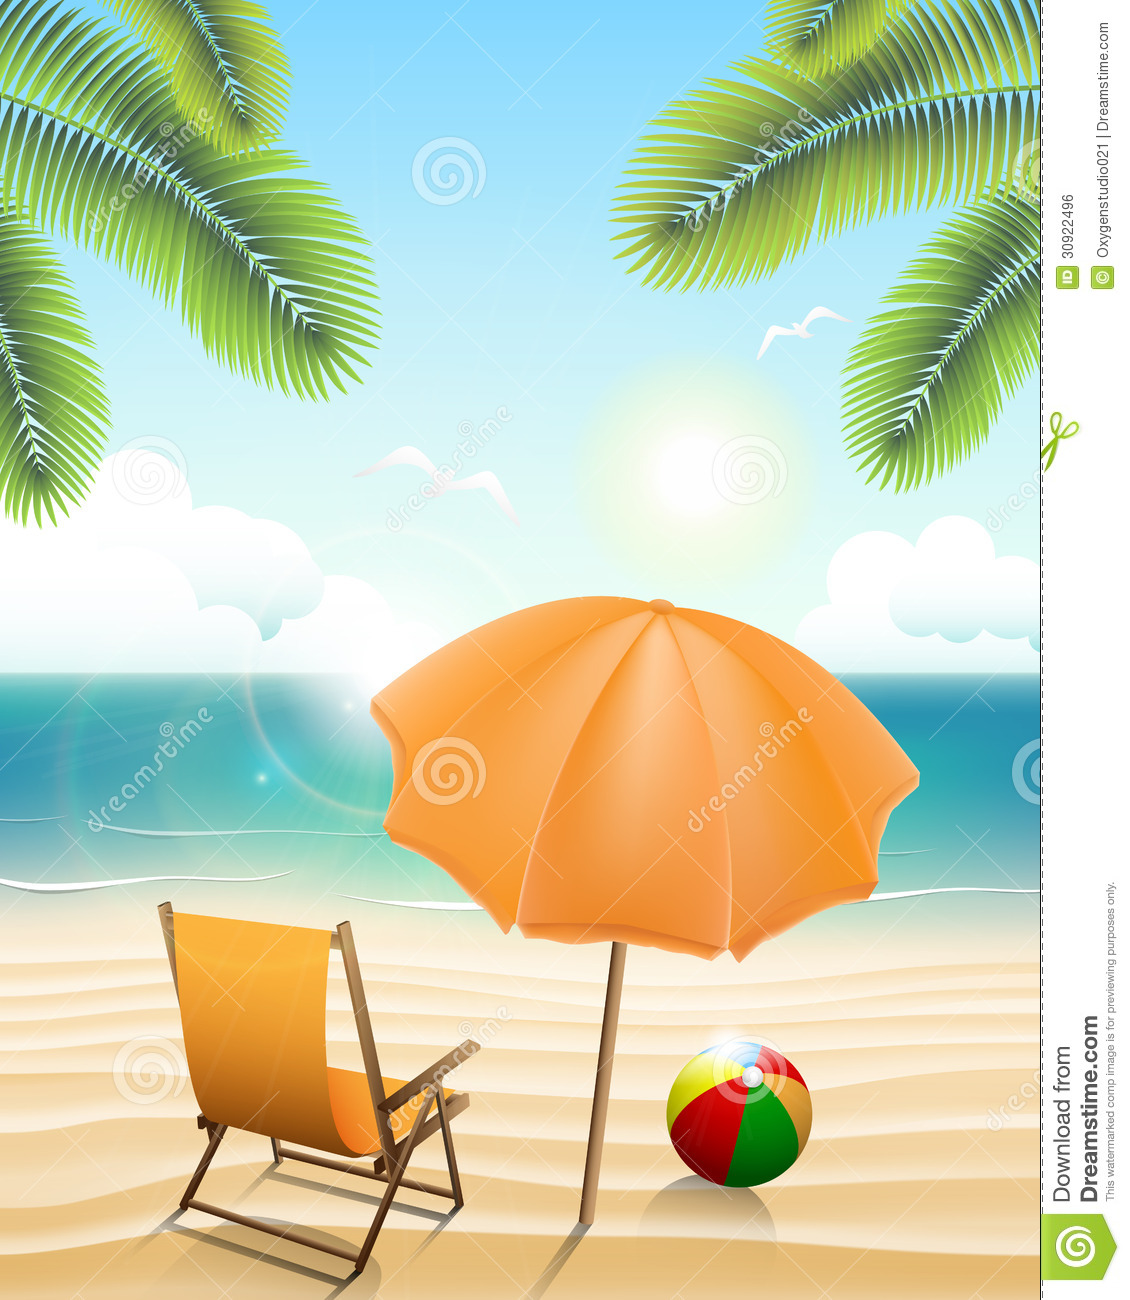 Beach chair and parasol vector illustration stock vector image - Beach With Parasol Chair Ball And Palm Trees Royalty